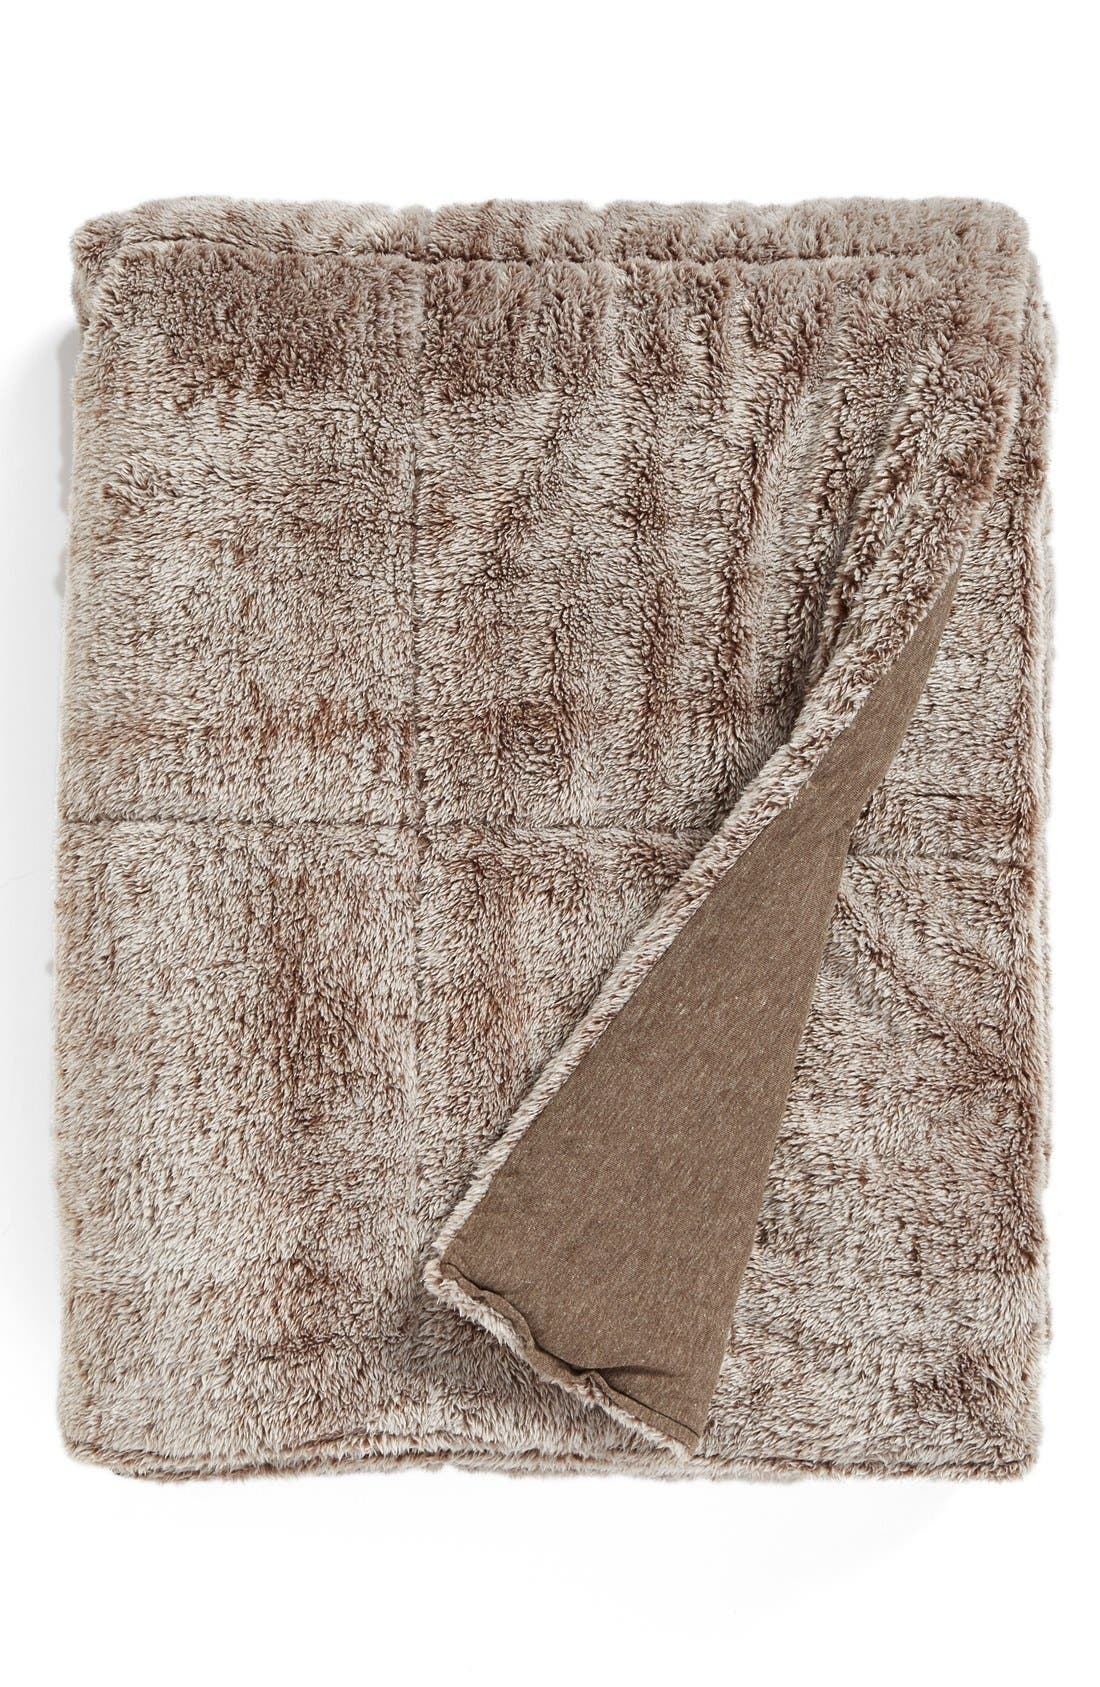 Main Image - Pem America 'Frosted' Throw